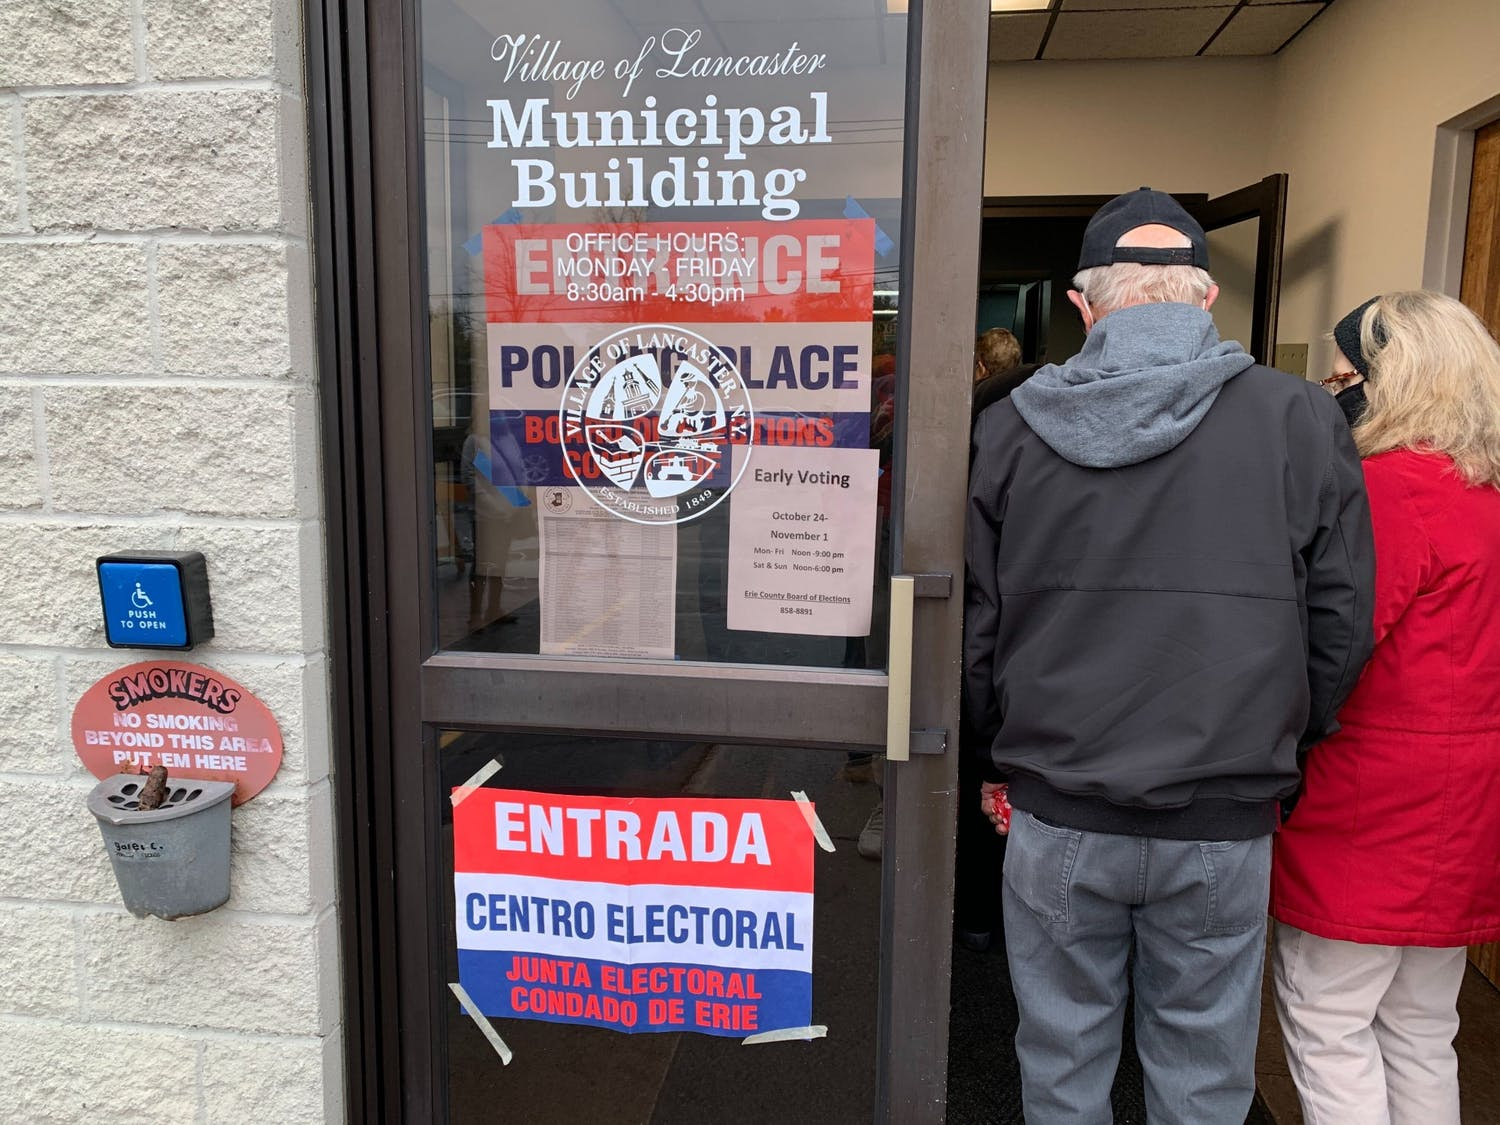 Hundreds of people braved the cold weather to vote early at the Lancaster Municipal Building in Lancaster last Thursday.